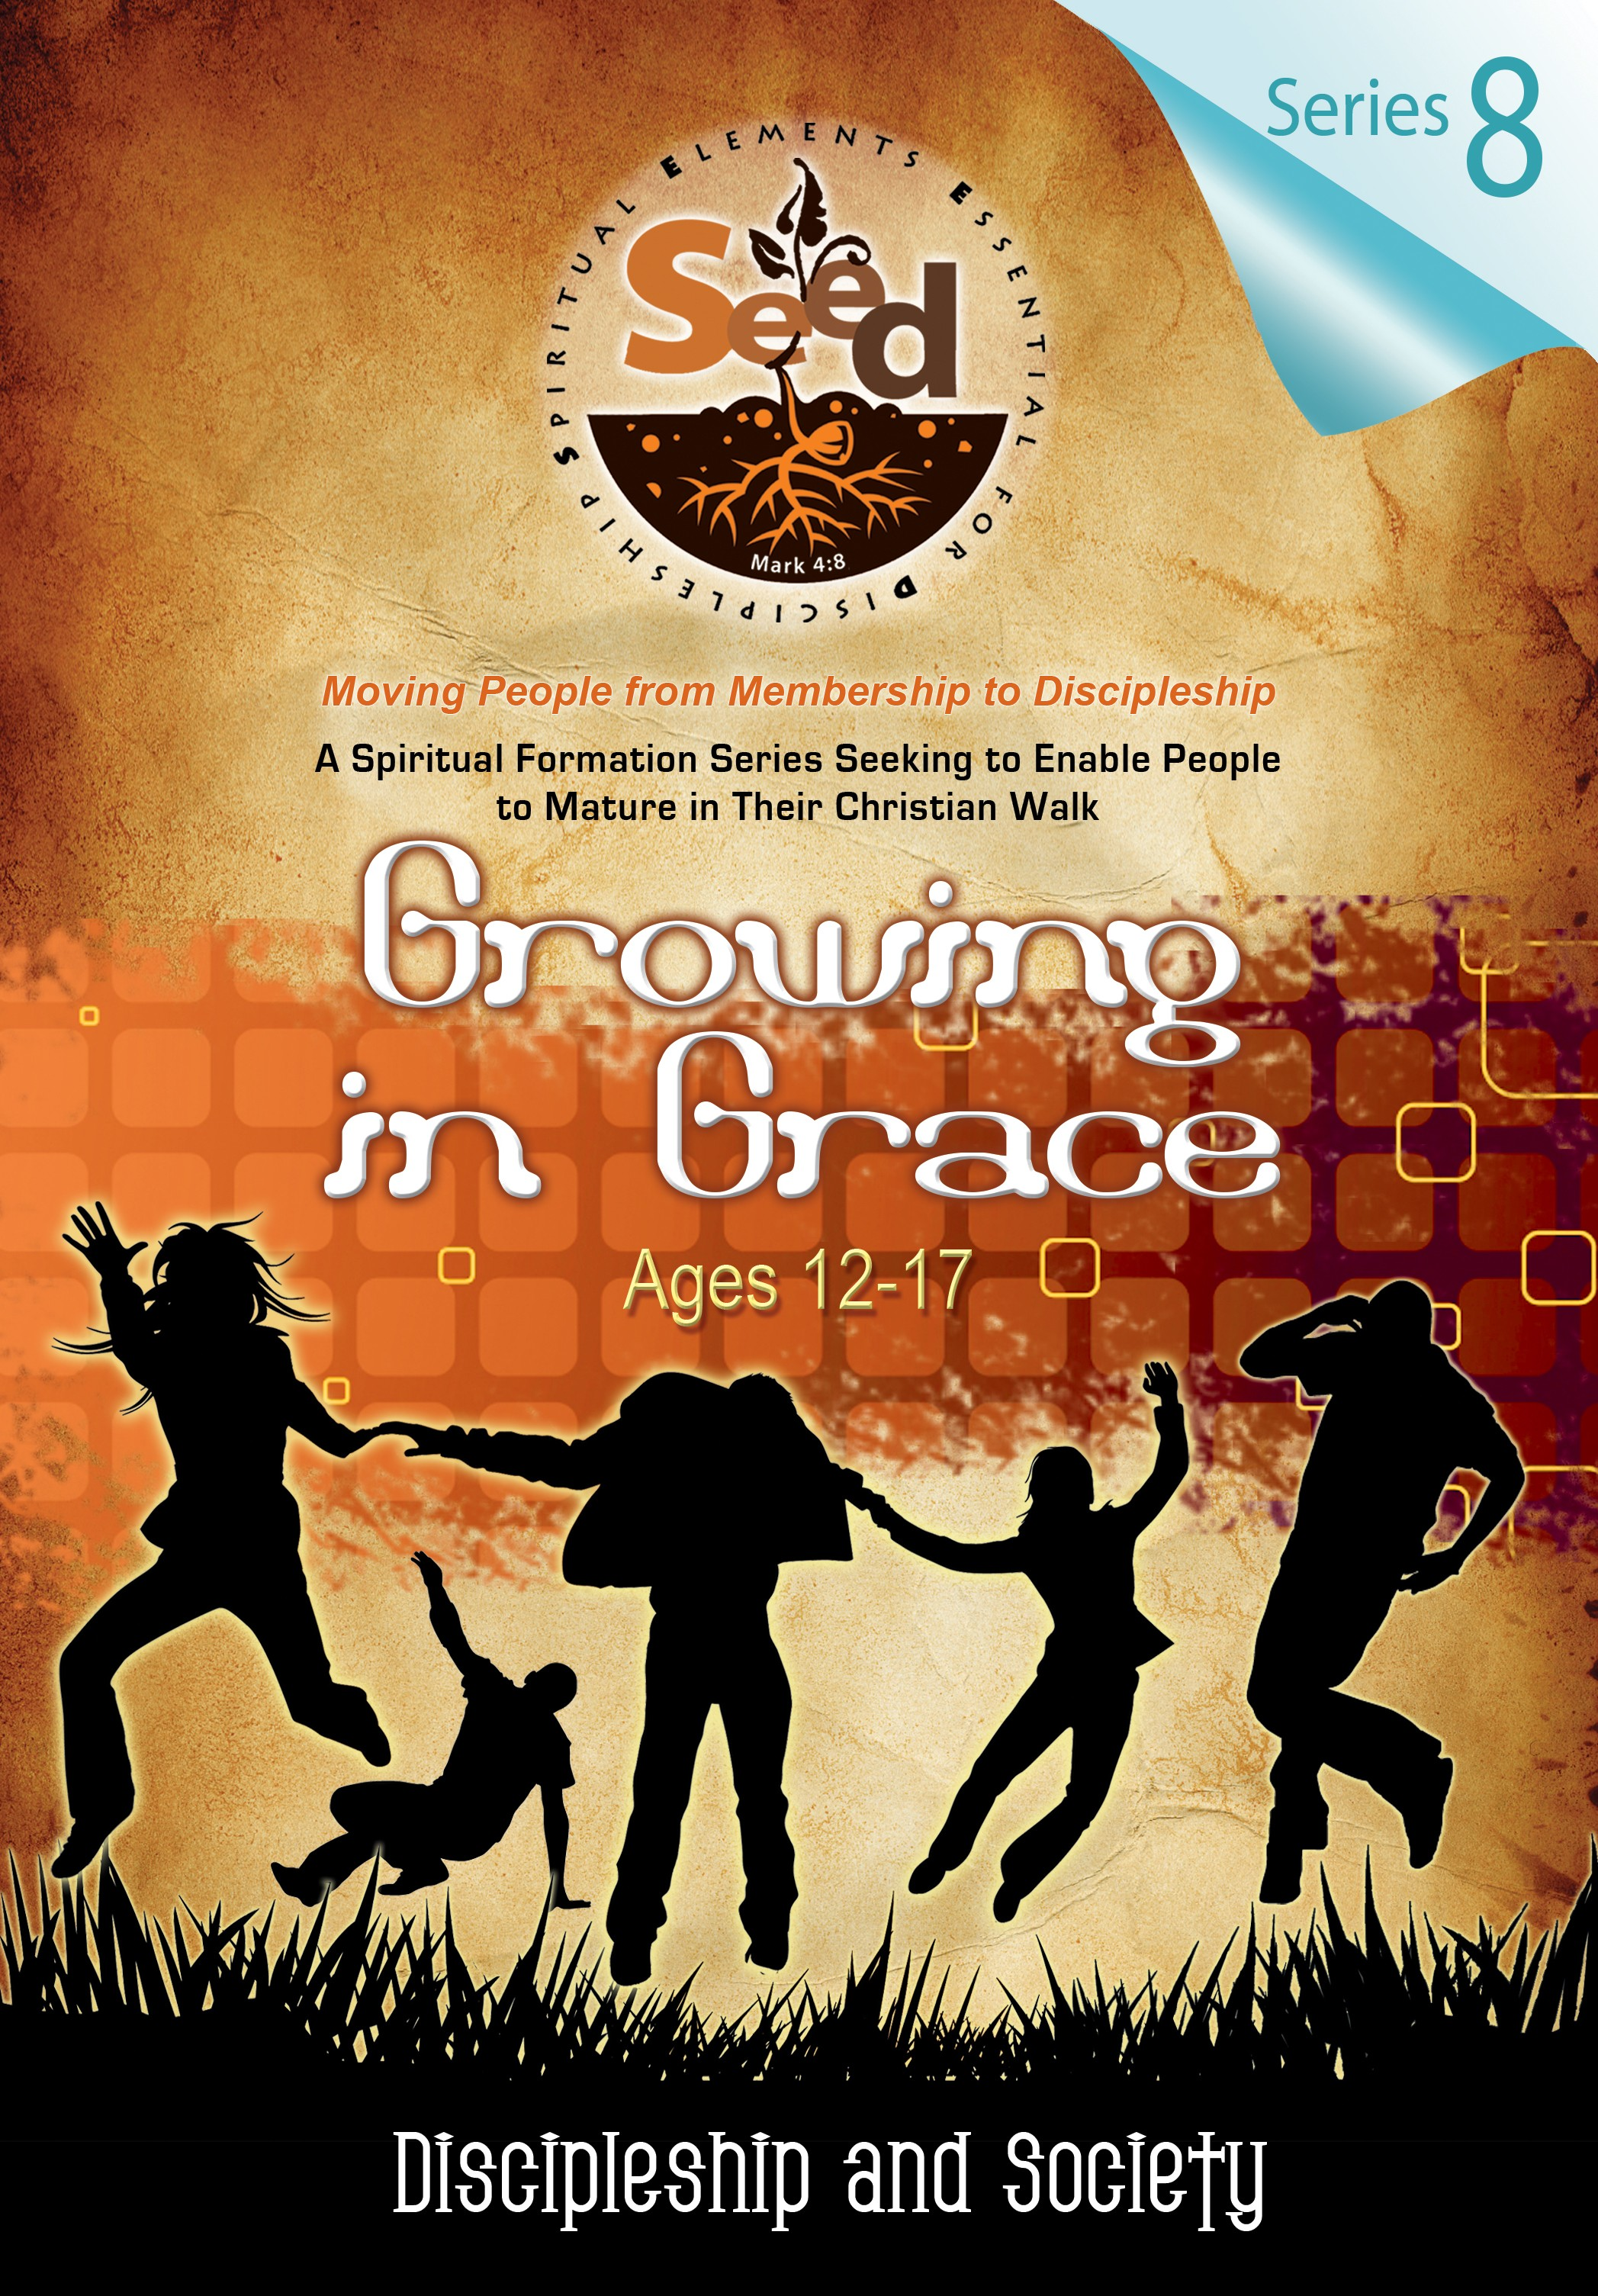 SEED Growing in Grace (Ages 12-17): Series 8: Discipleship and Society